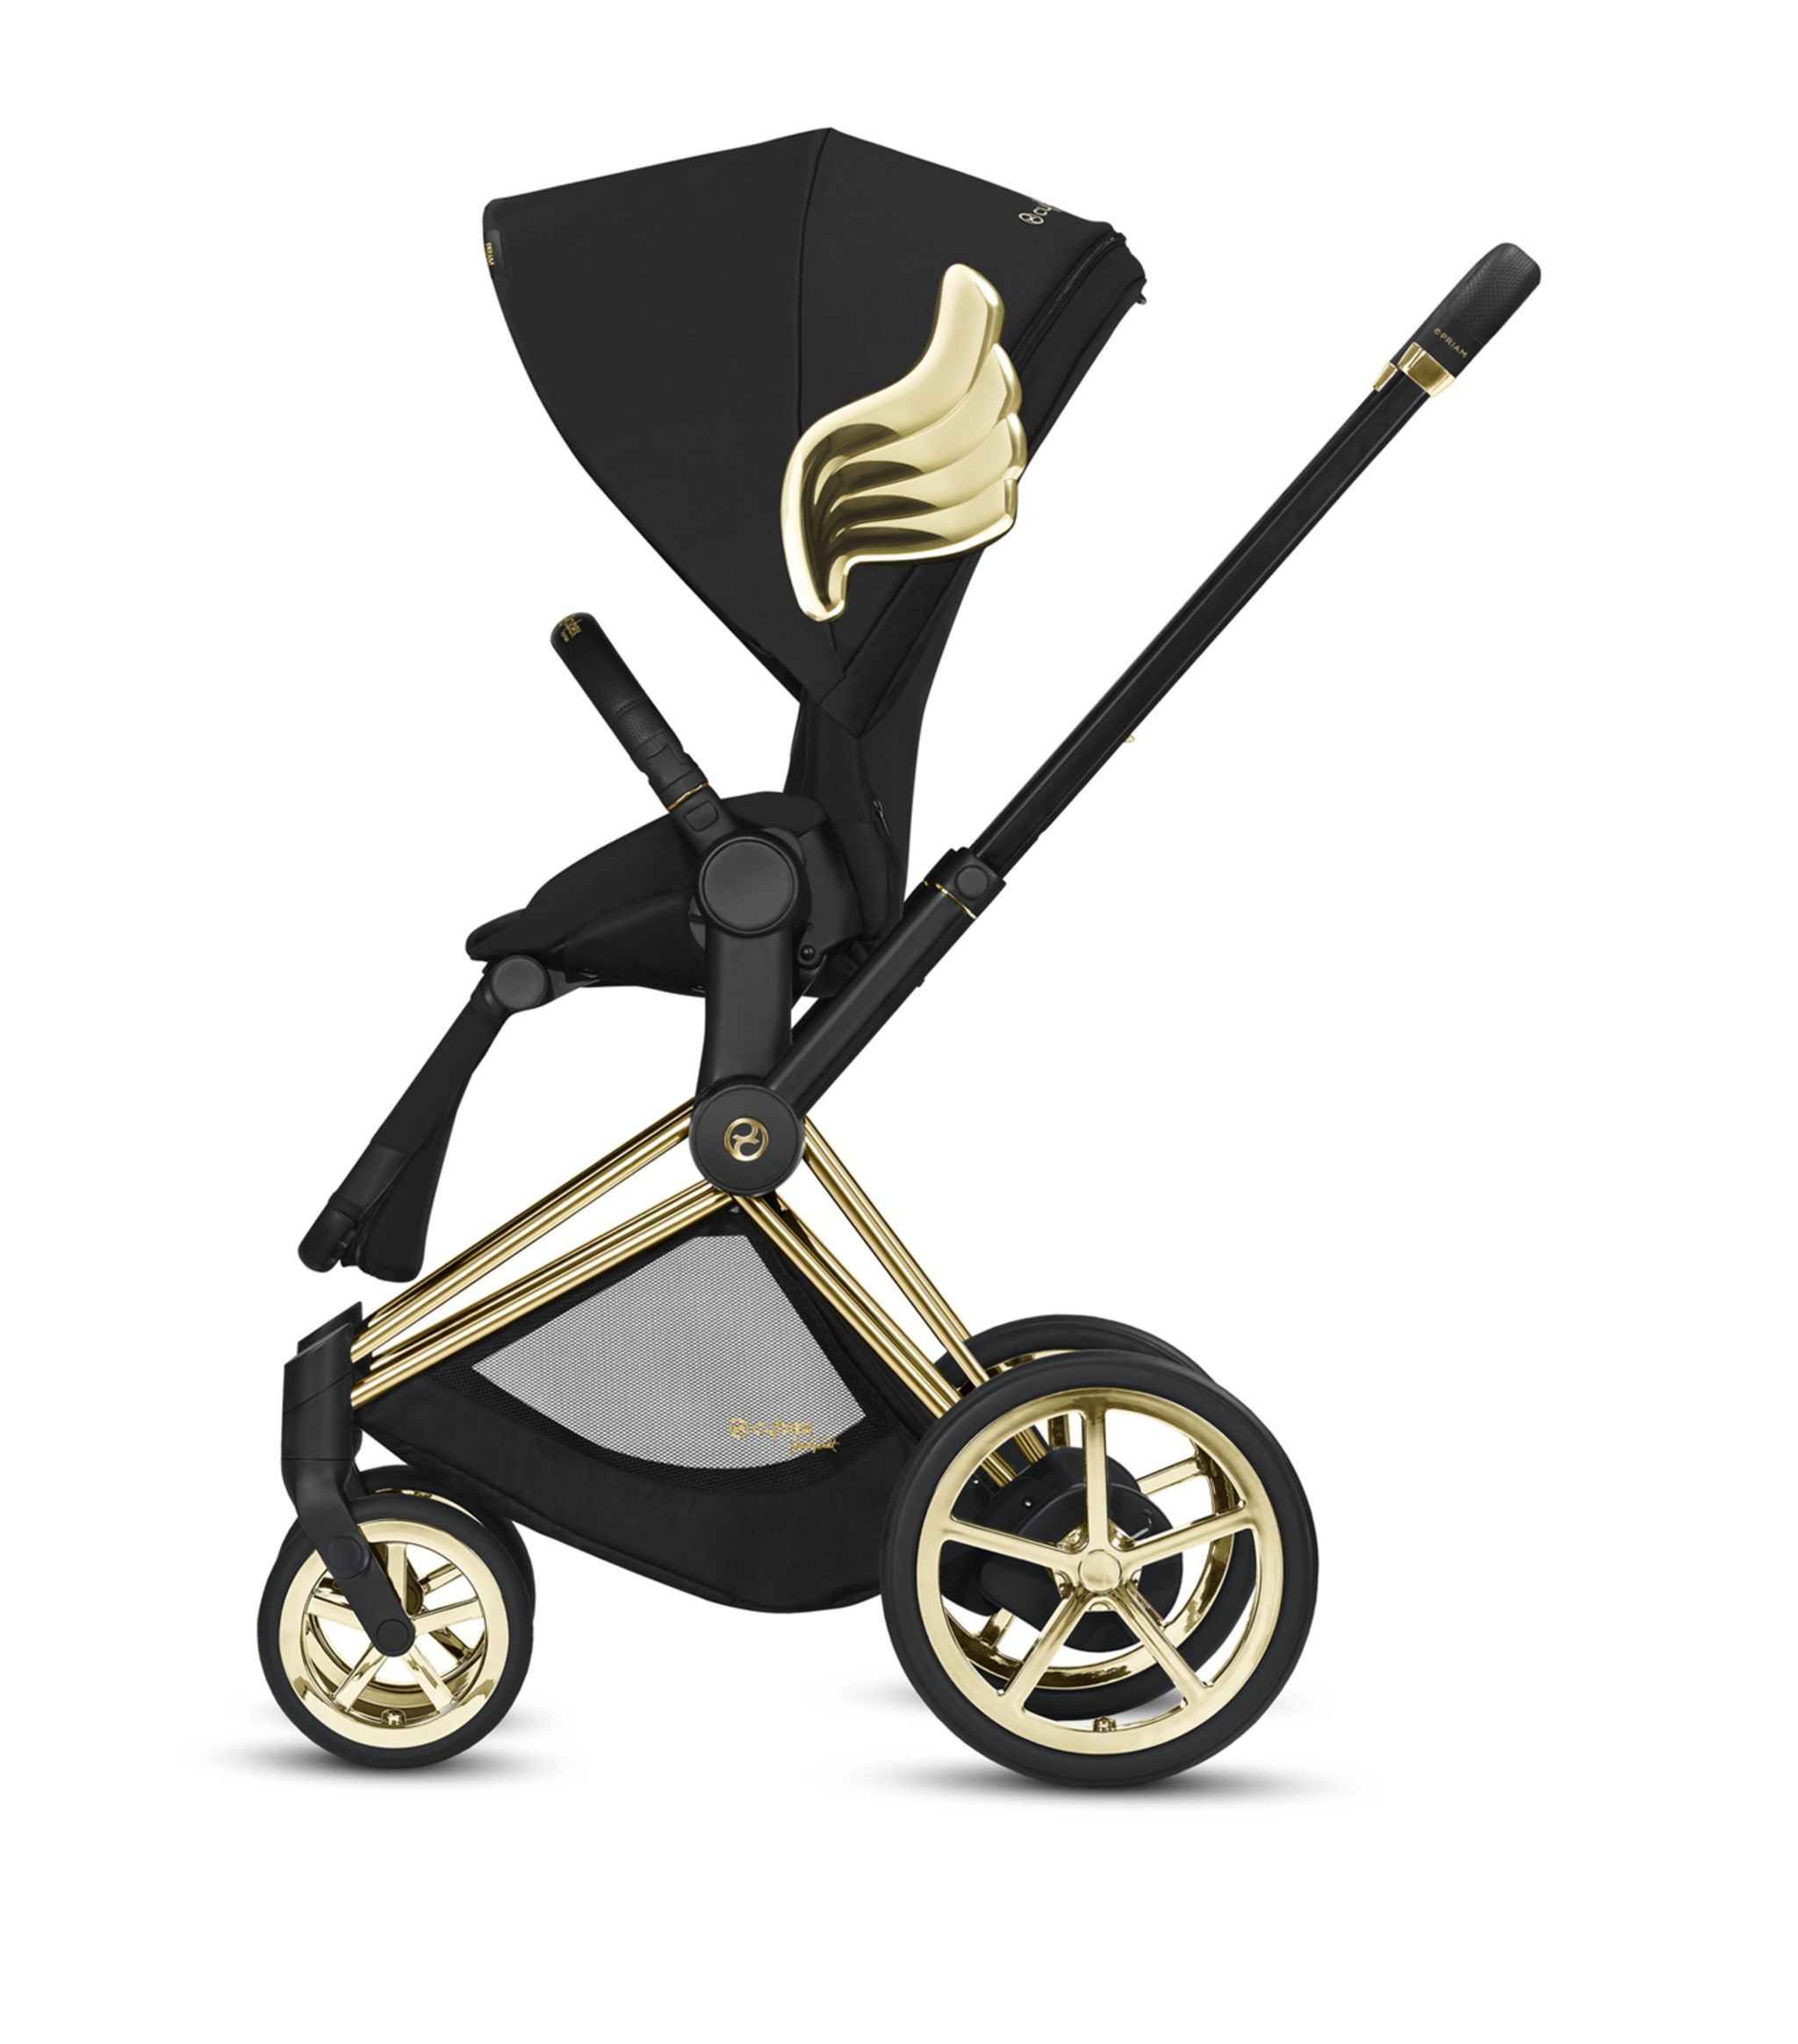 Cybex Jeremy Scott ePriam with Seat Pack (Electronic